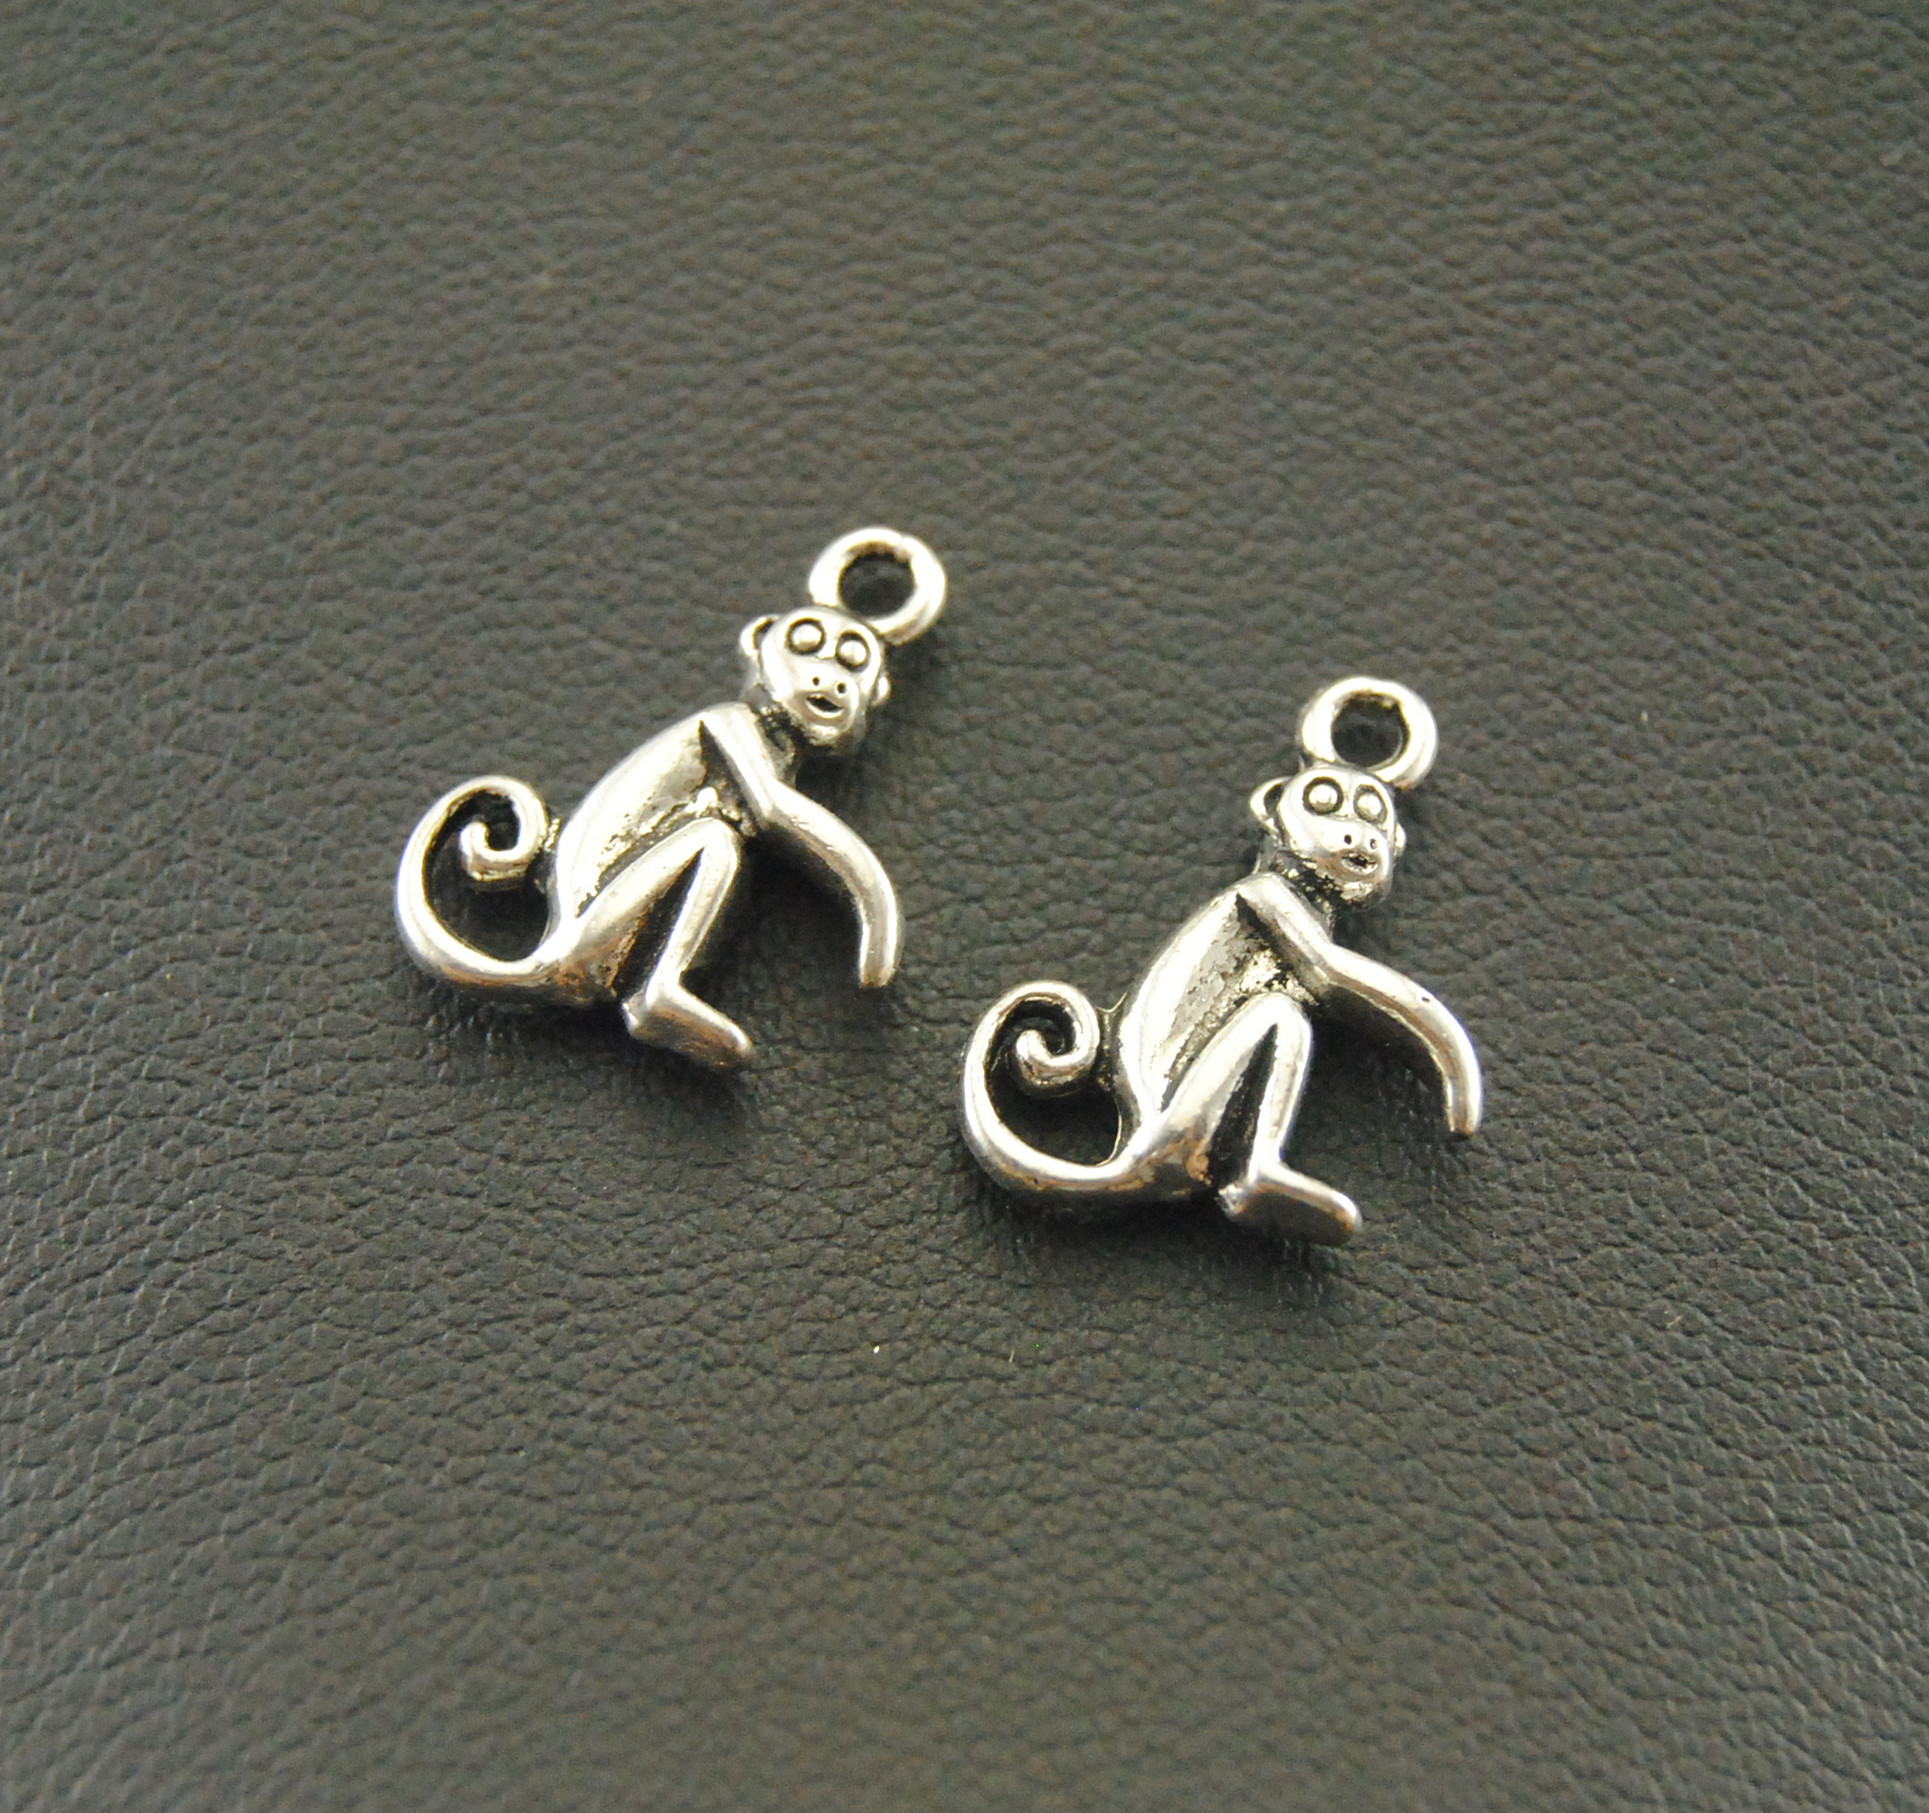 Popular Monkey Charms for Bracelets Buy Cheap Monkey Charms for